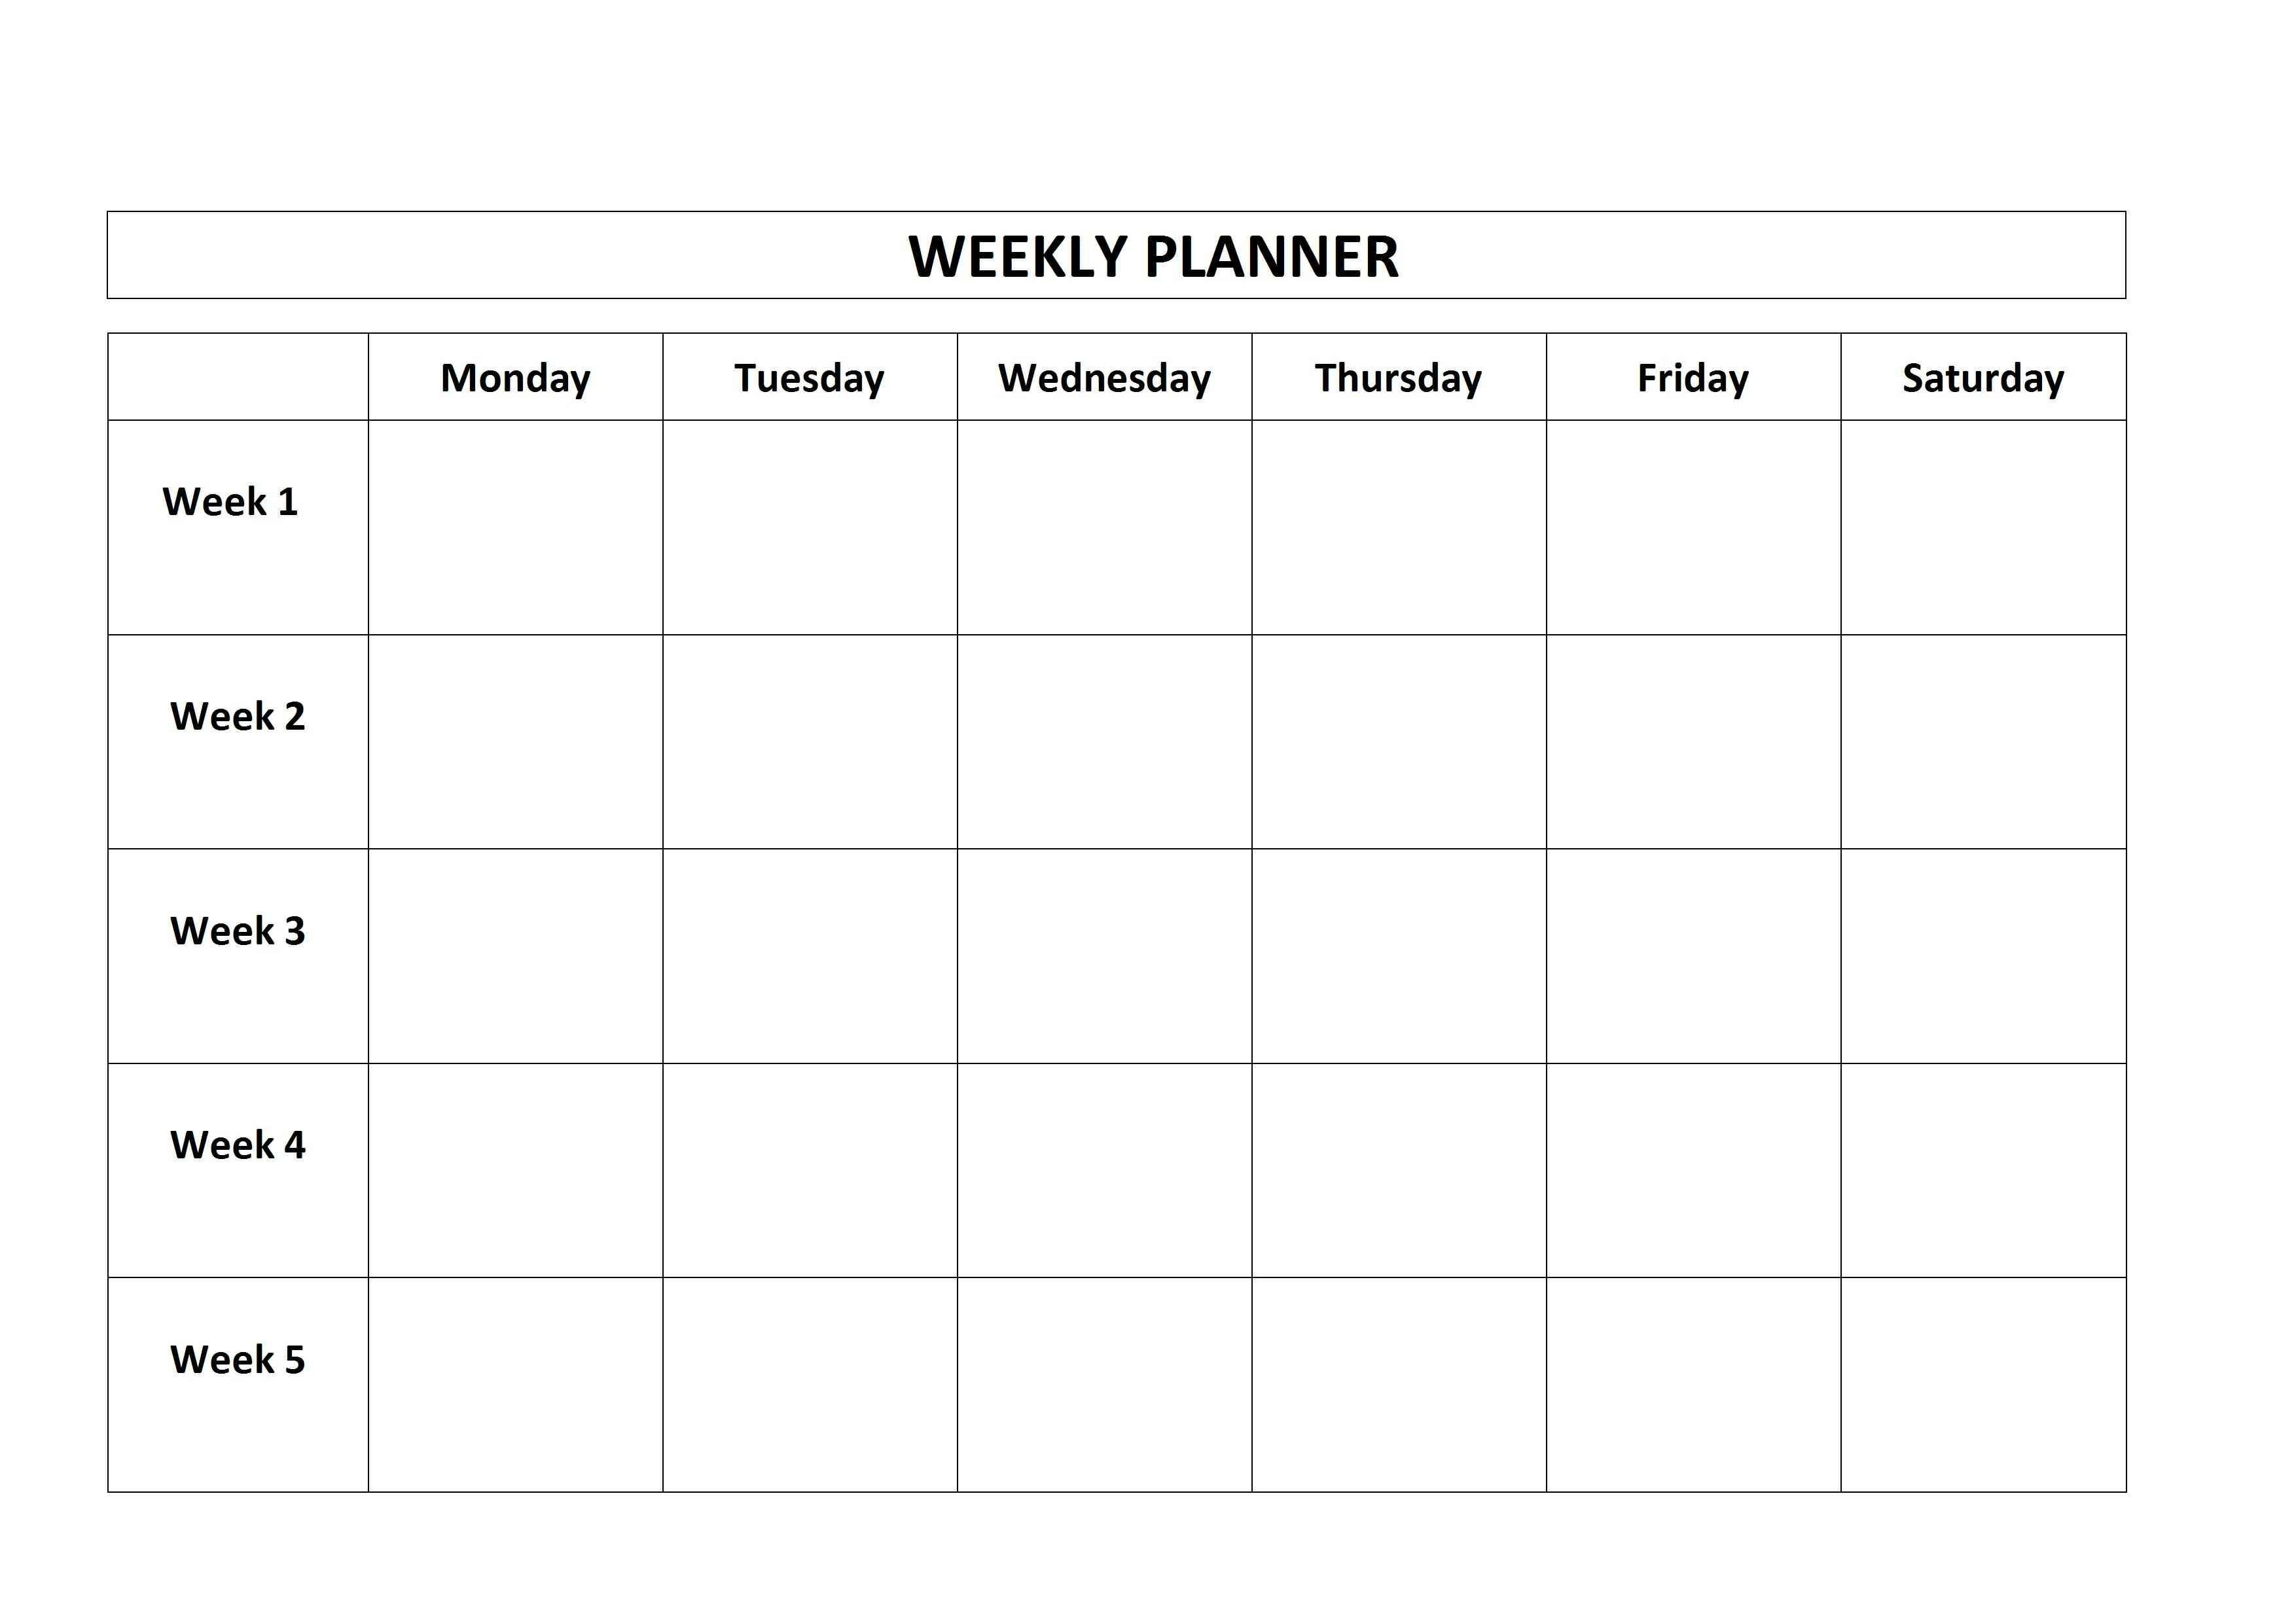 Free Printable Weekly Planner Monday Friday School Calendar Mnday To Friday Calendar Templates